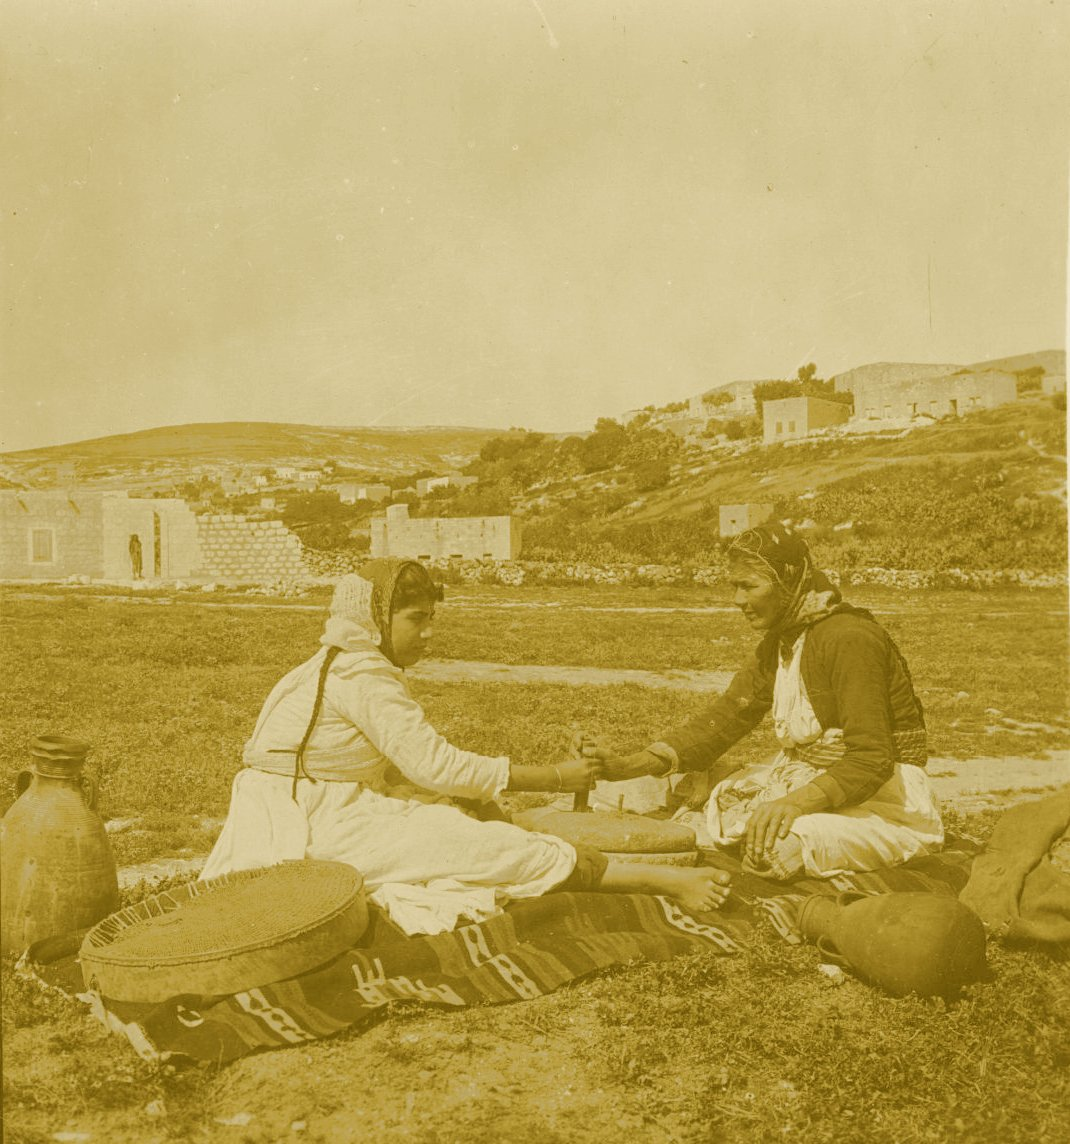 Nazareth - الناصرة : NAZARETH - Women of Nazareth 45 (Late 19th, early 20th c.) - Two women grinding in field. (Per Reem Ackall)